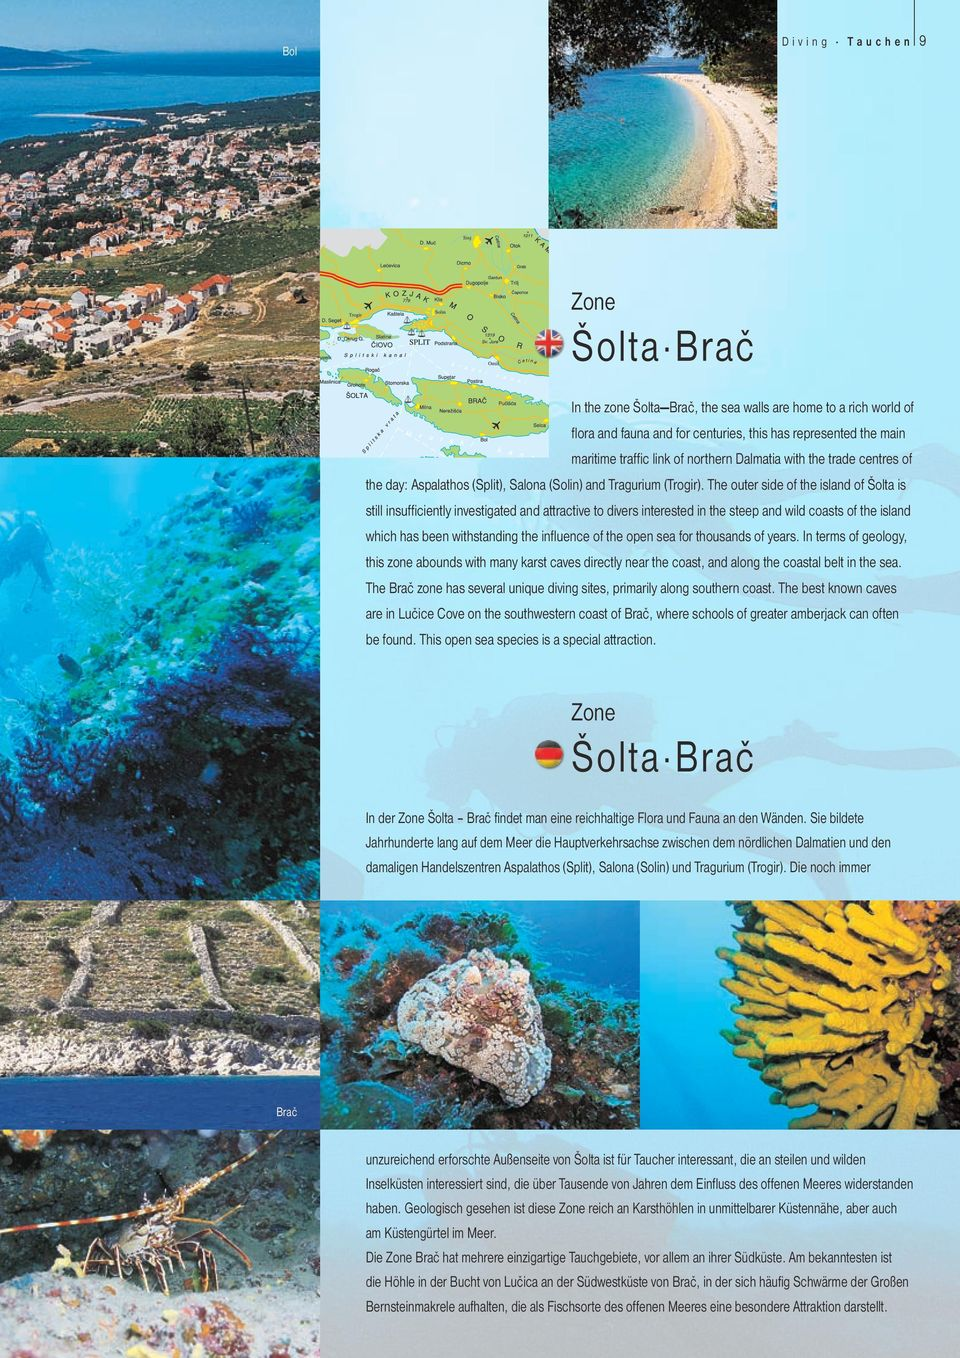 The outer side of the island of Šolta is still insufficiently investigated and attractive to divers interested in the steep and wild coasts of the island which has been withstanding the influence of